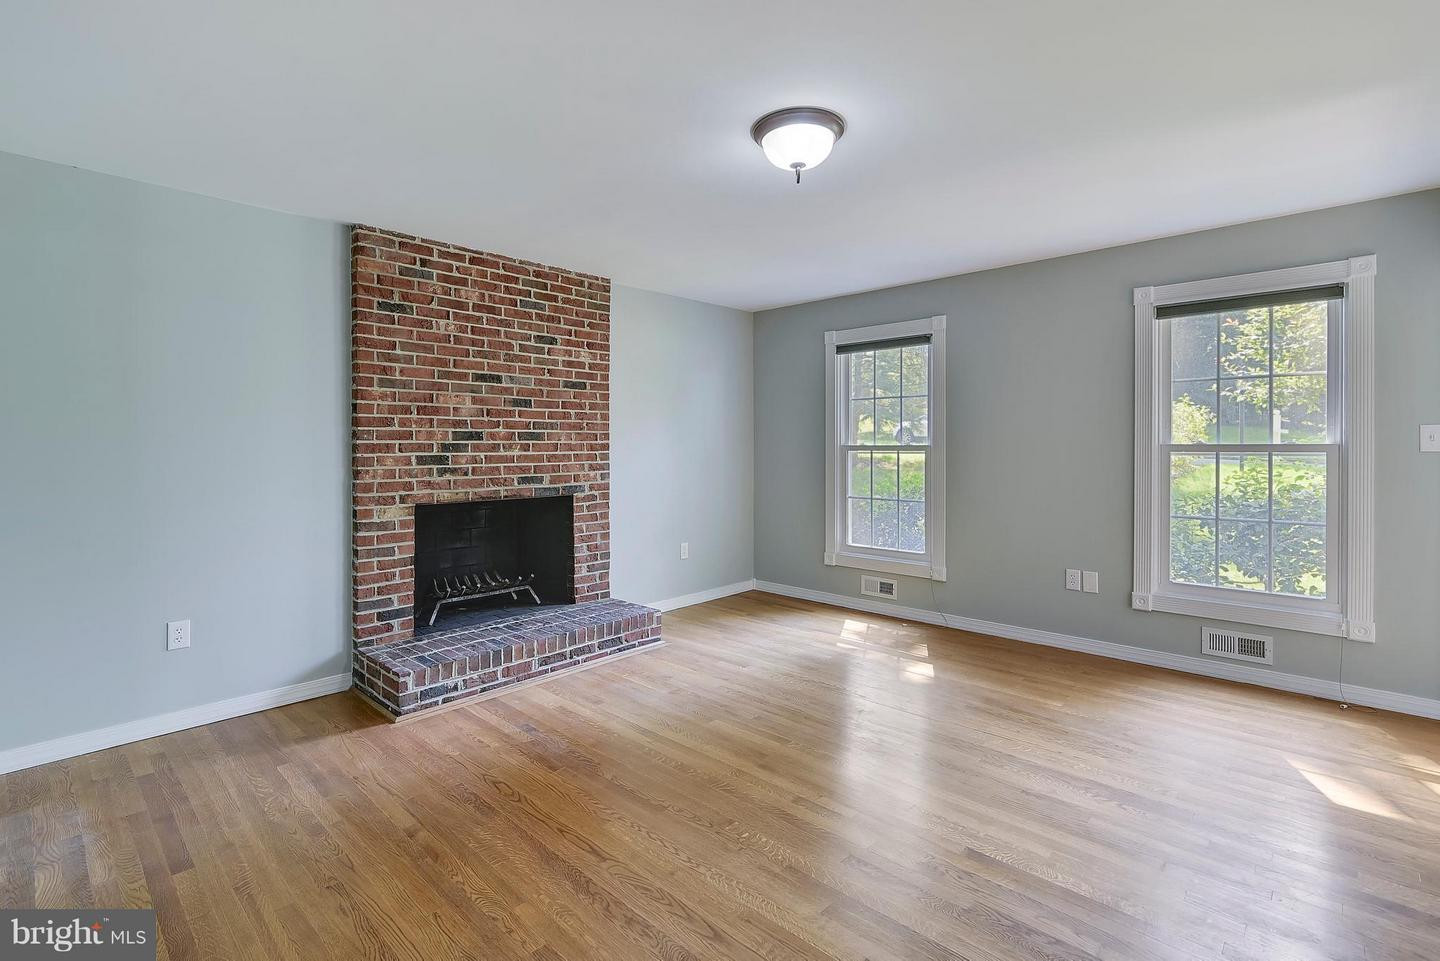 hardwood floor refinishing ellicott city md of real estate for sale 9616 verdict dr vienna va 22181 mls in view photo slide show 30 30 photo